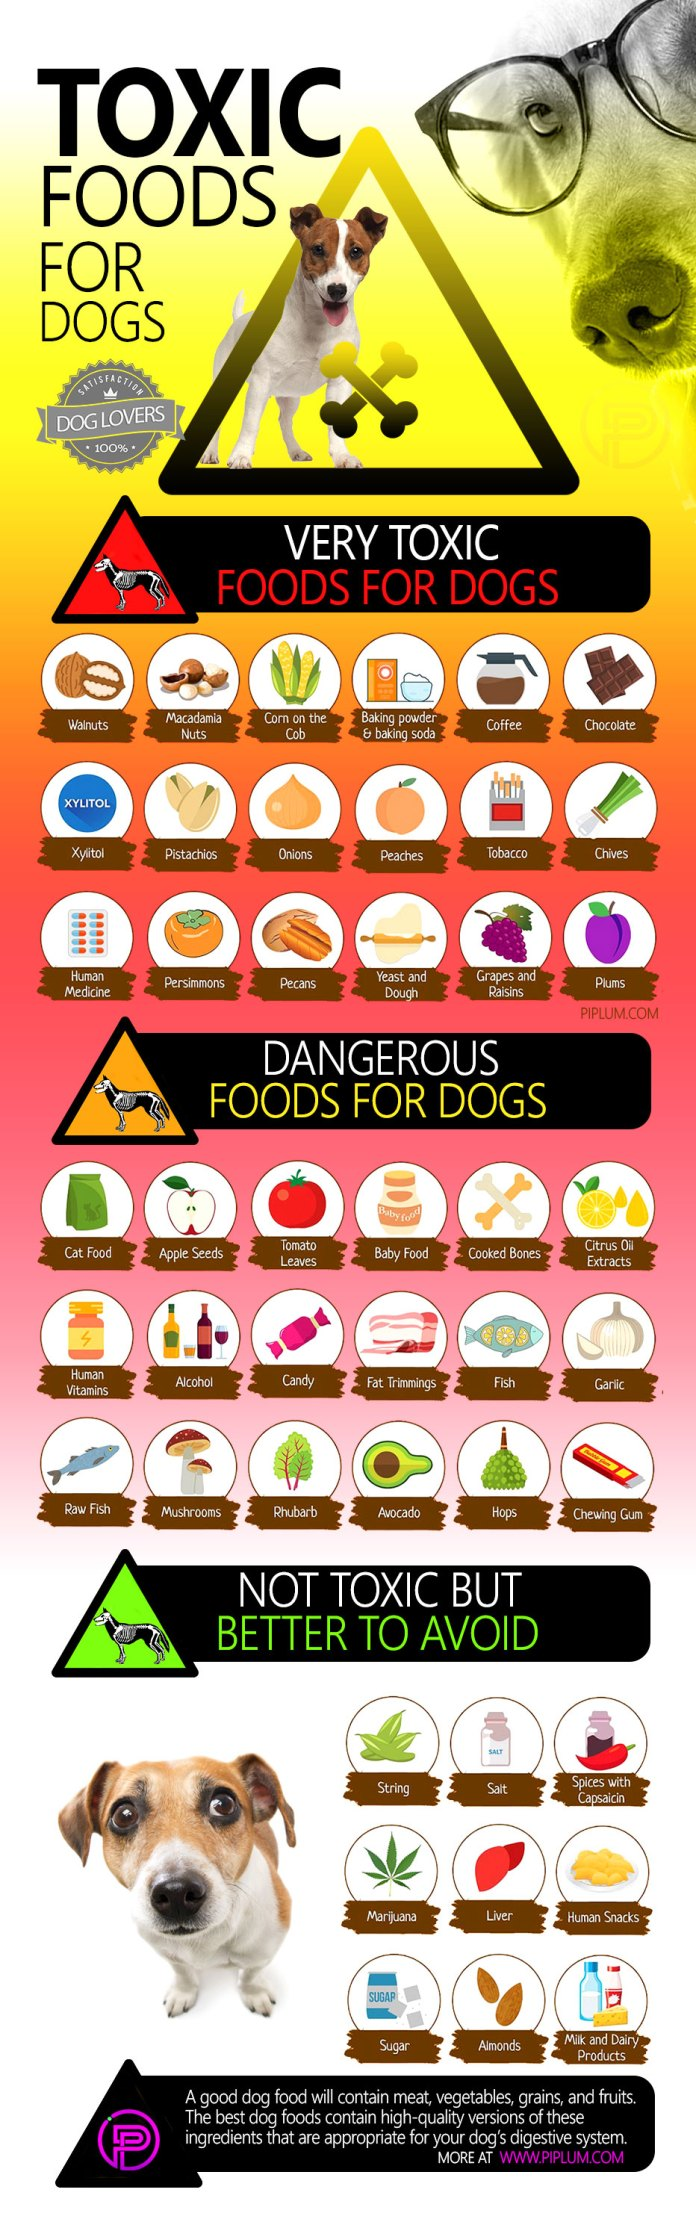 Toxic-foods-for-dogs-Poster-what-snacks-pets-cant-eat-poison-food-animals-cats